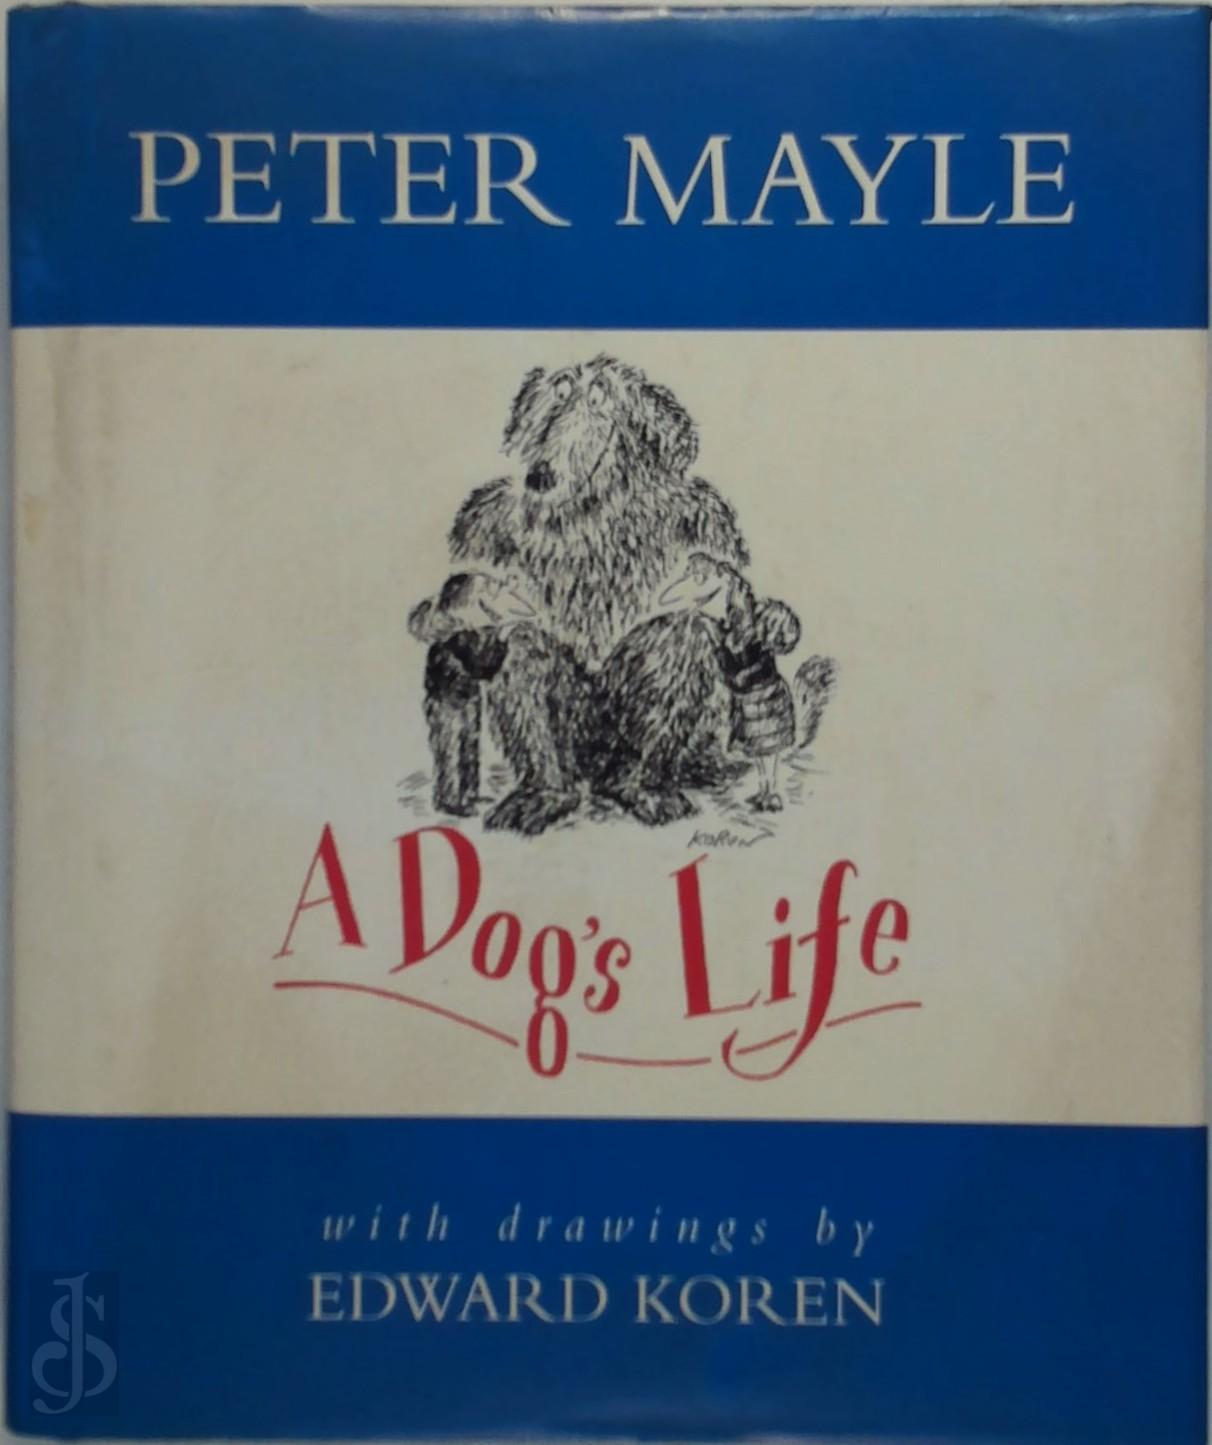 Peter Mayle - A Dog's Life